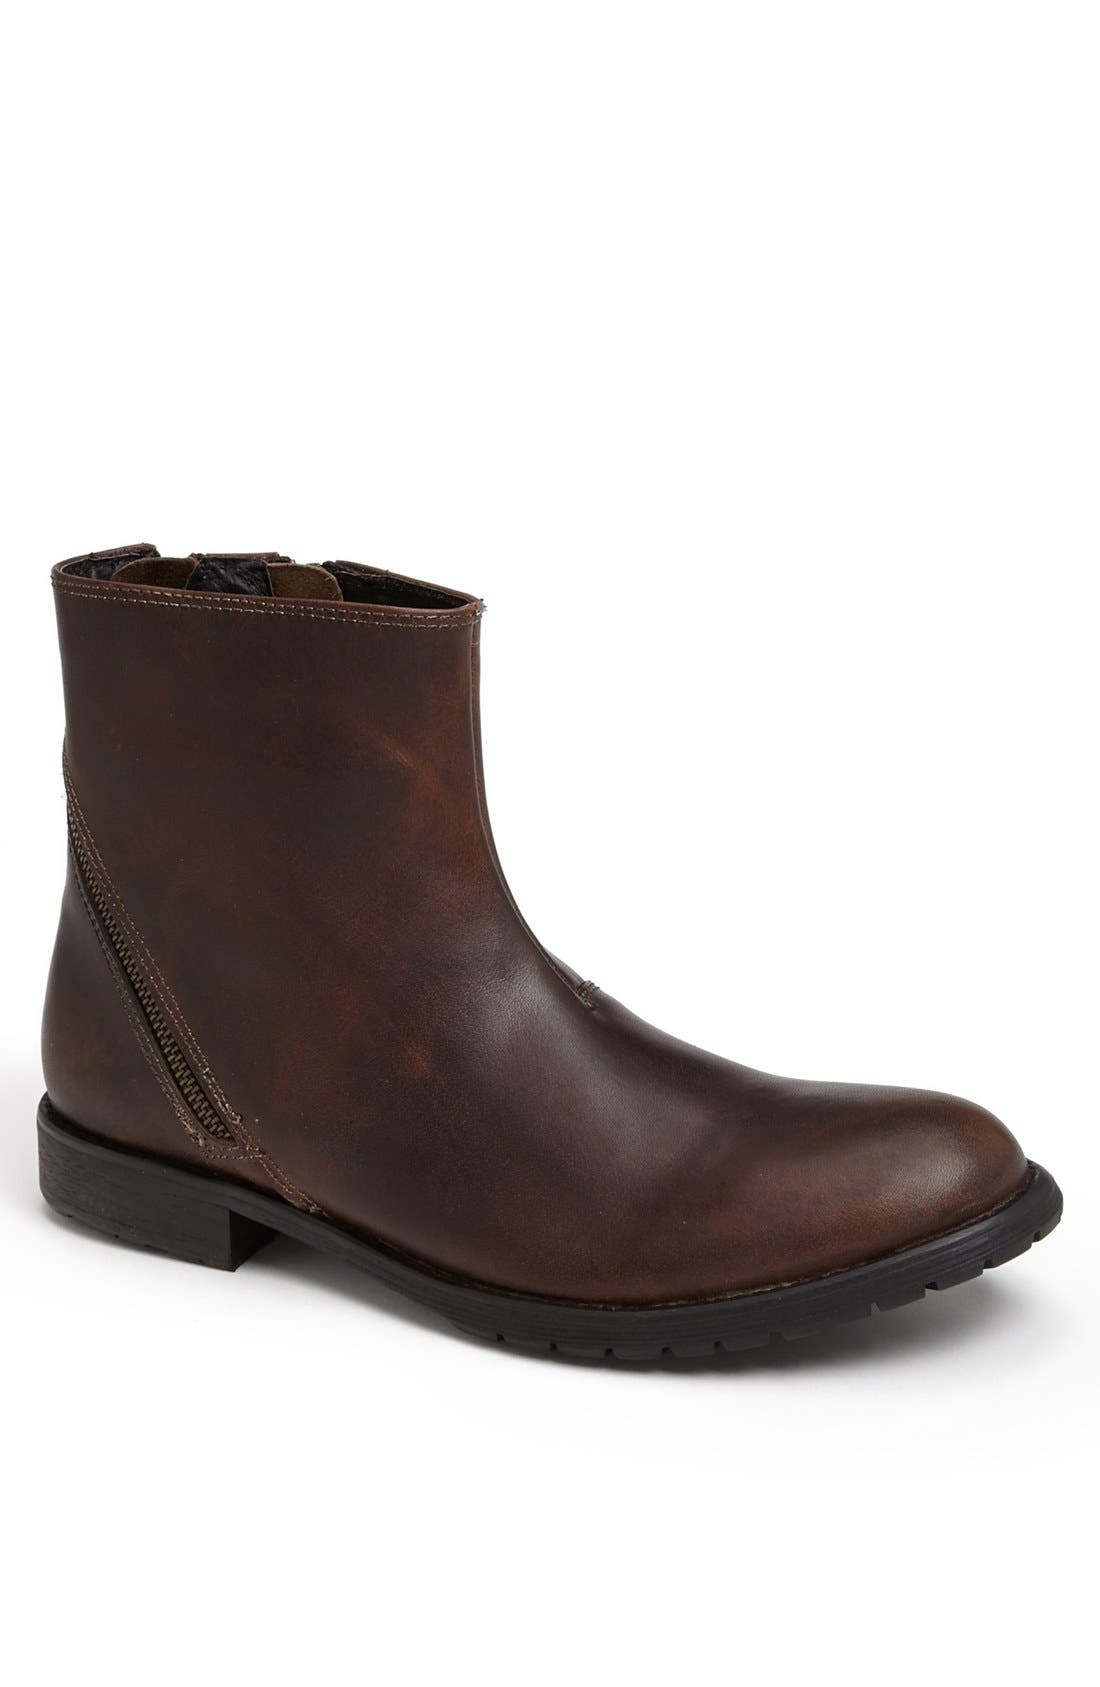 Main Image - Bed Stu 'Harrison' Zip Boot (Men)